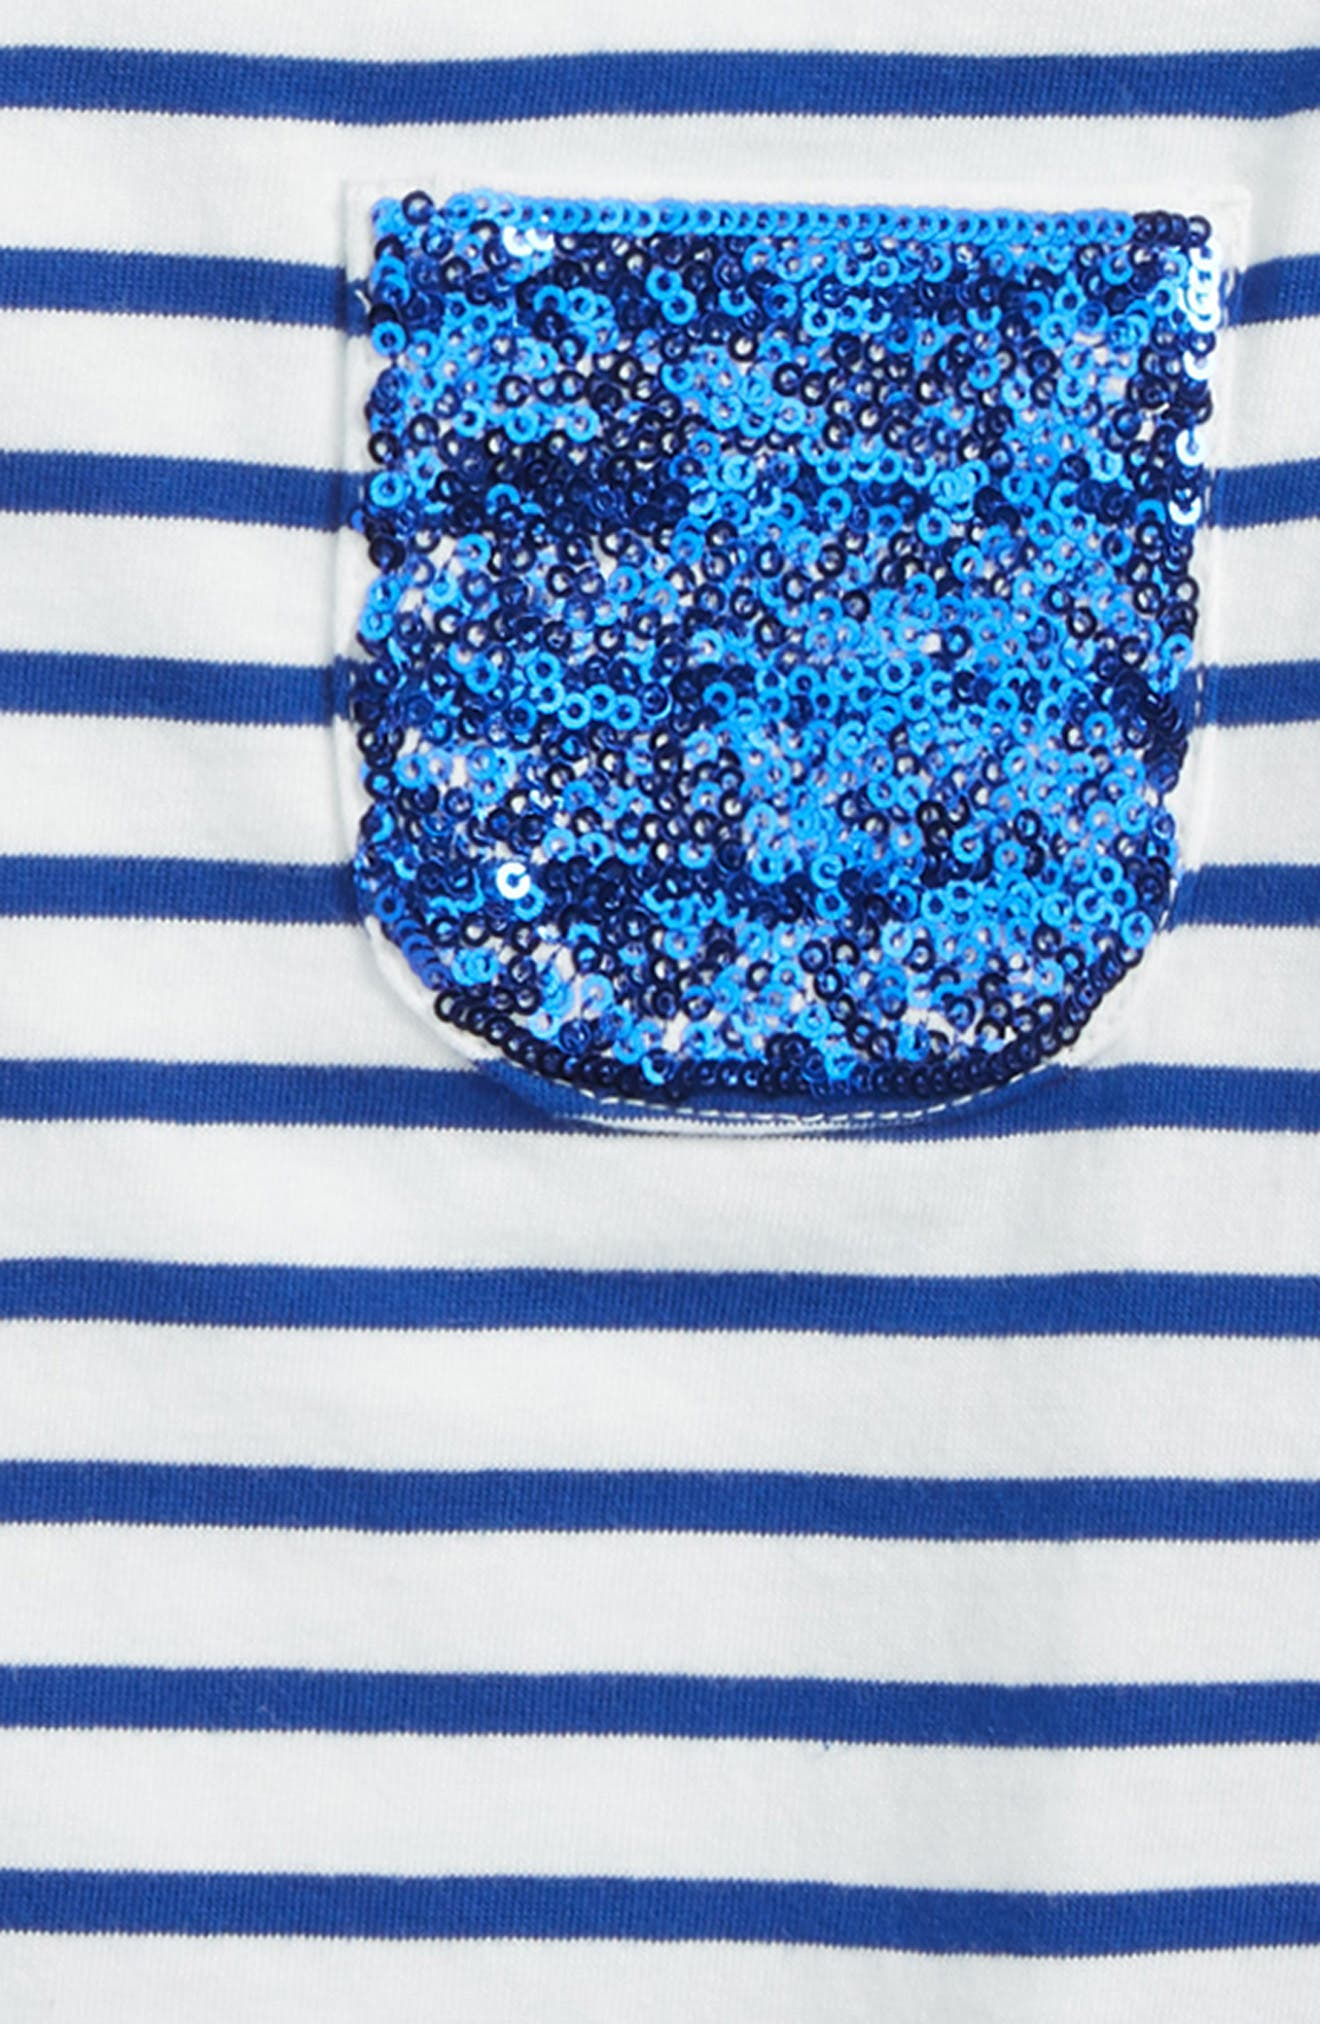 Sequin Pocket Tee,                             Alternate thumbnail 2, color,                             424